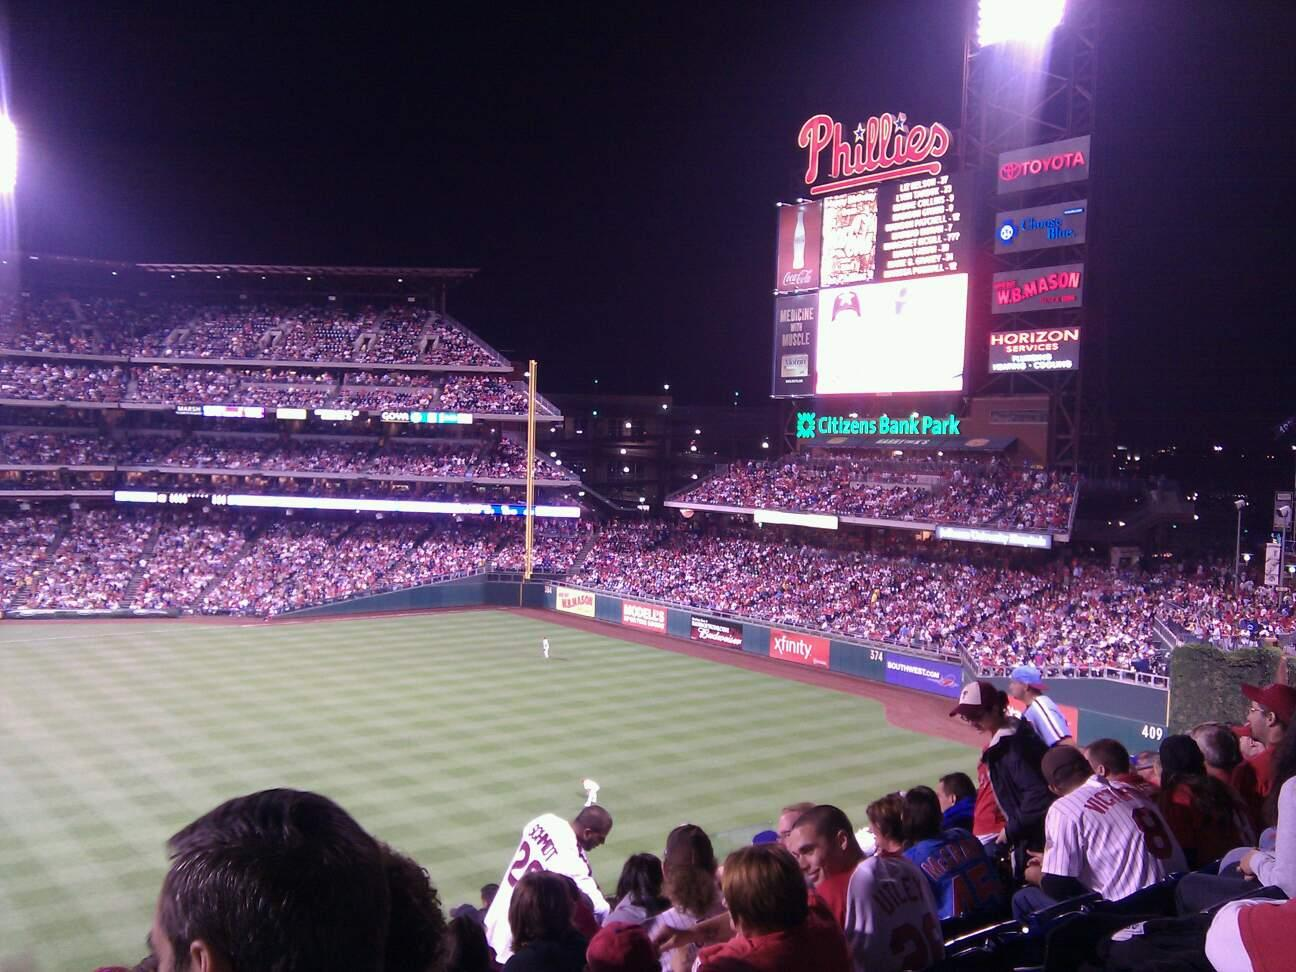 Citizens Bank Park Section 203 Row 11 Seat 16